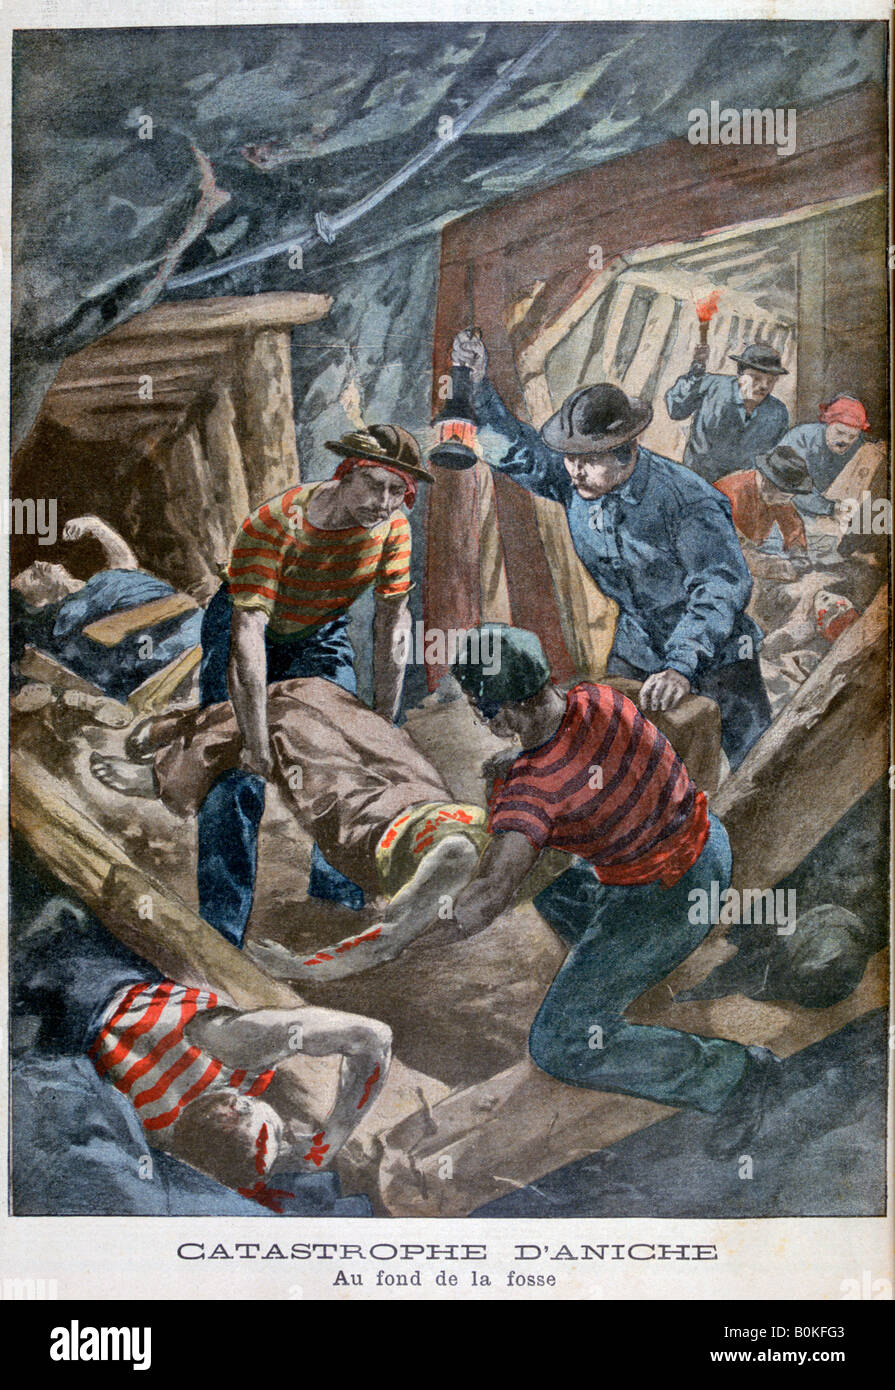 Mine collapse, Aniche, France, 1900. Artist: Unknown - Stock Image